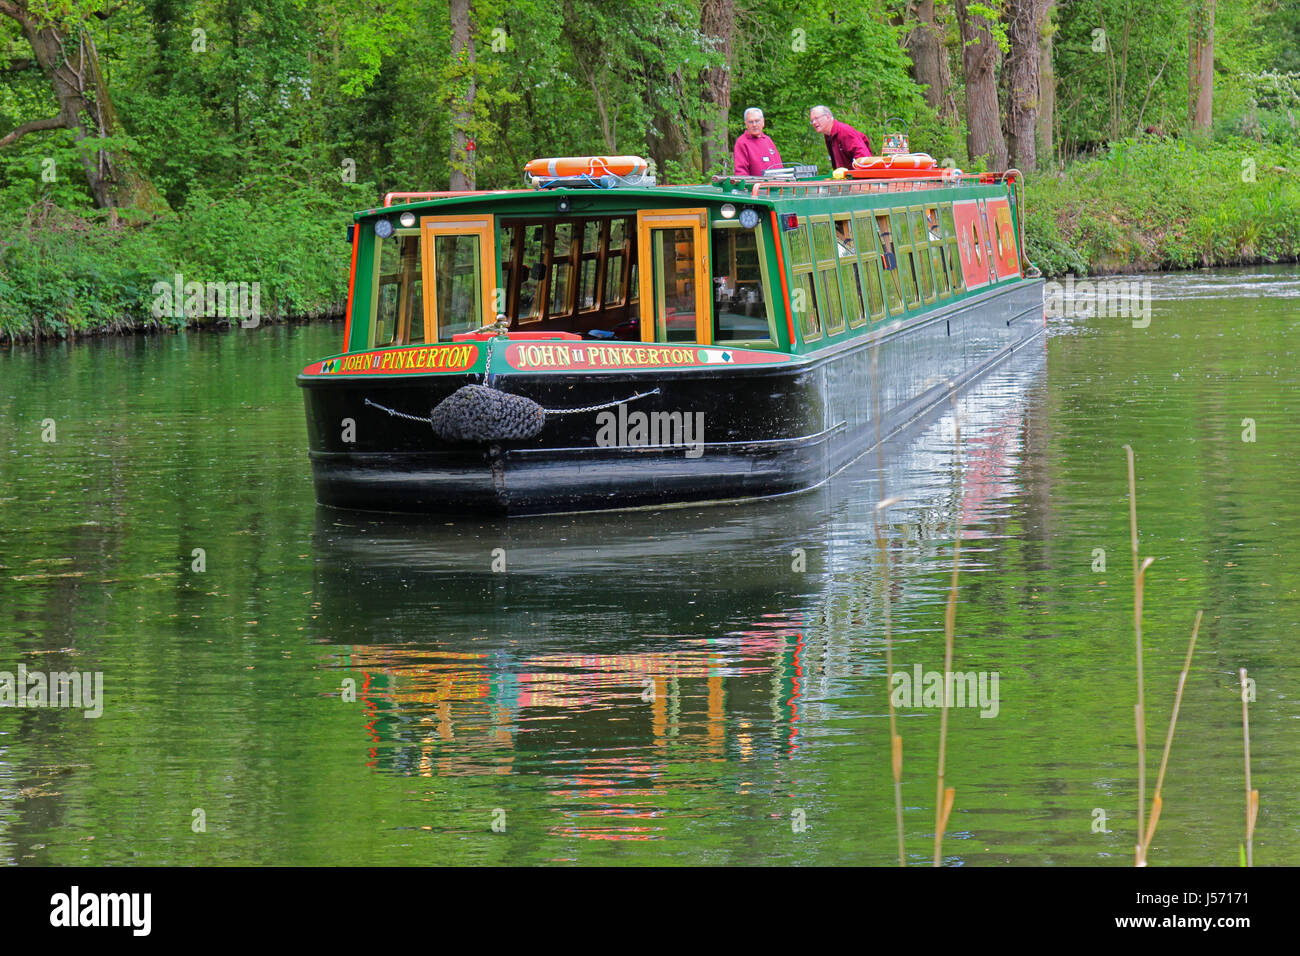 Head on shot of a canal boat on the Basingstoke Canal, Hampshire, UK - Stock Image